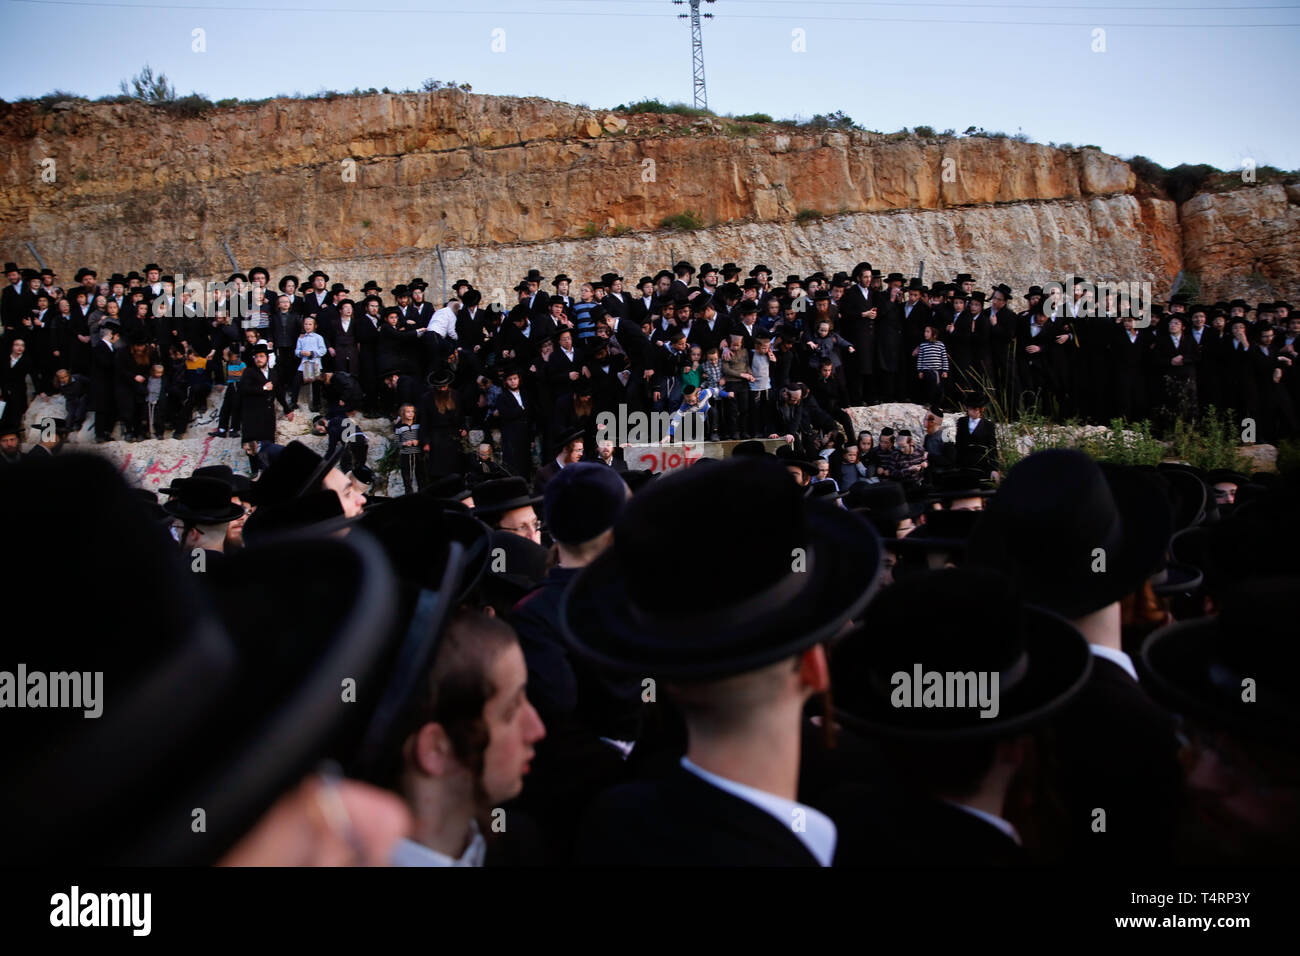 (190419) -- JERUSALEM, April 19, 2019 (Xinhua) -- Ultra-Orthodox Jews stand near a spring as they take part in the ritual of Mayim Shelanu (water that has slept ) for the upcoming Jewish holiday of Passover in the Jerusalem hills, on April 18, 2019. (Xinhua/Gil Cohen Magen) - Stock Image